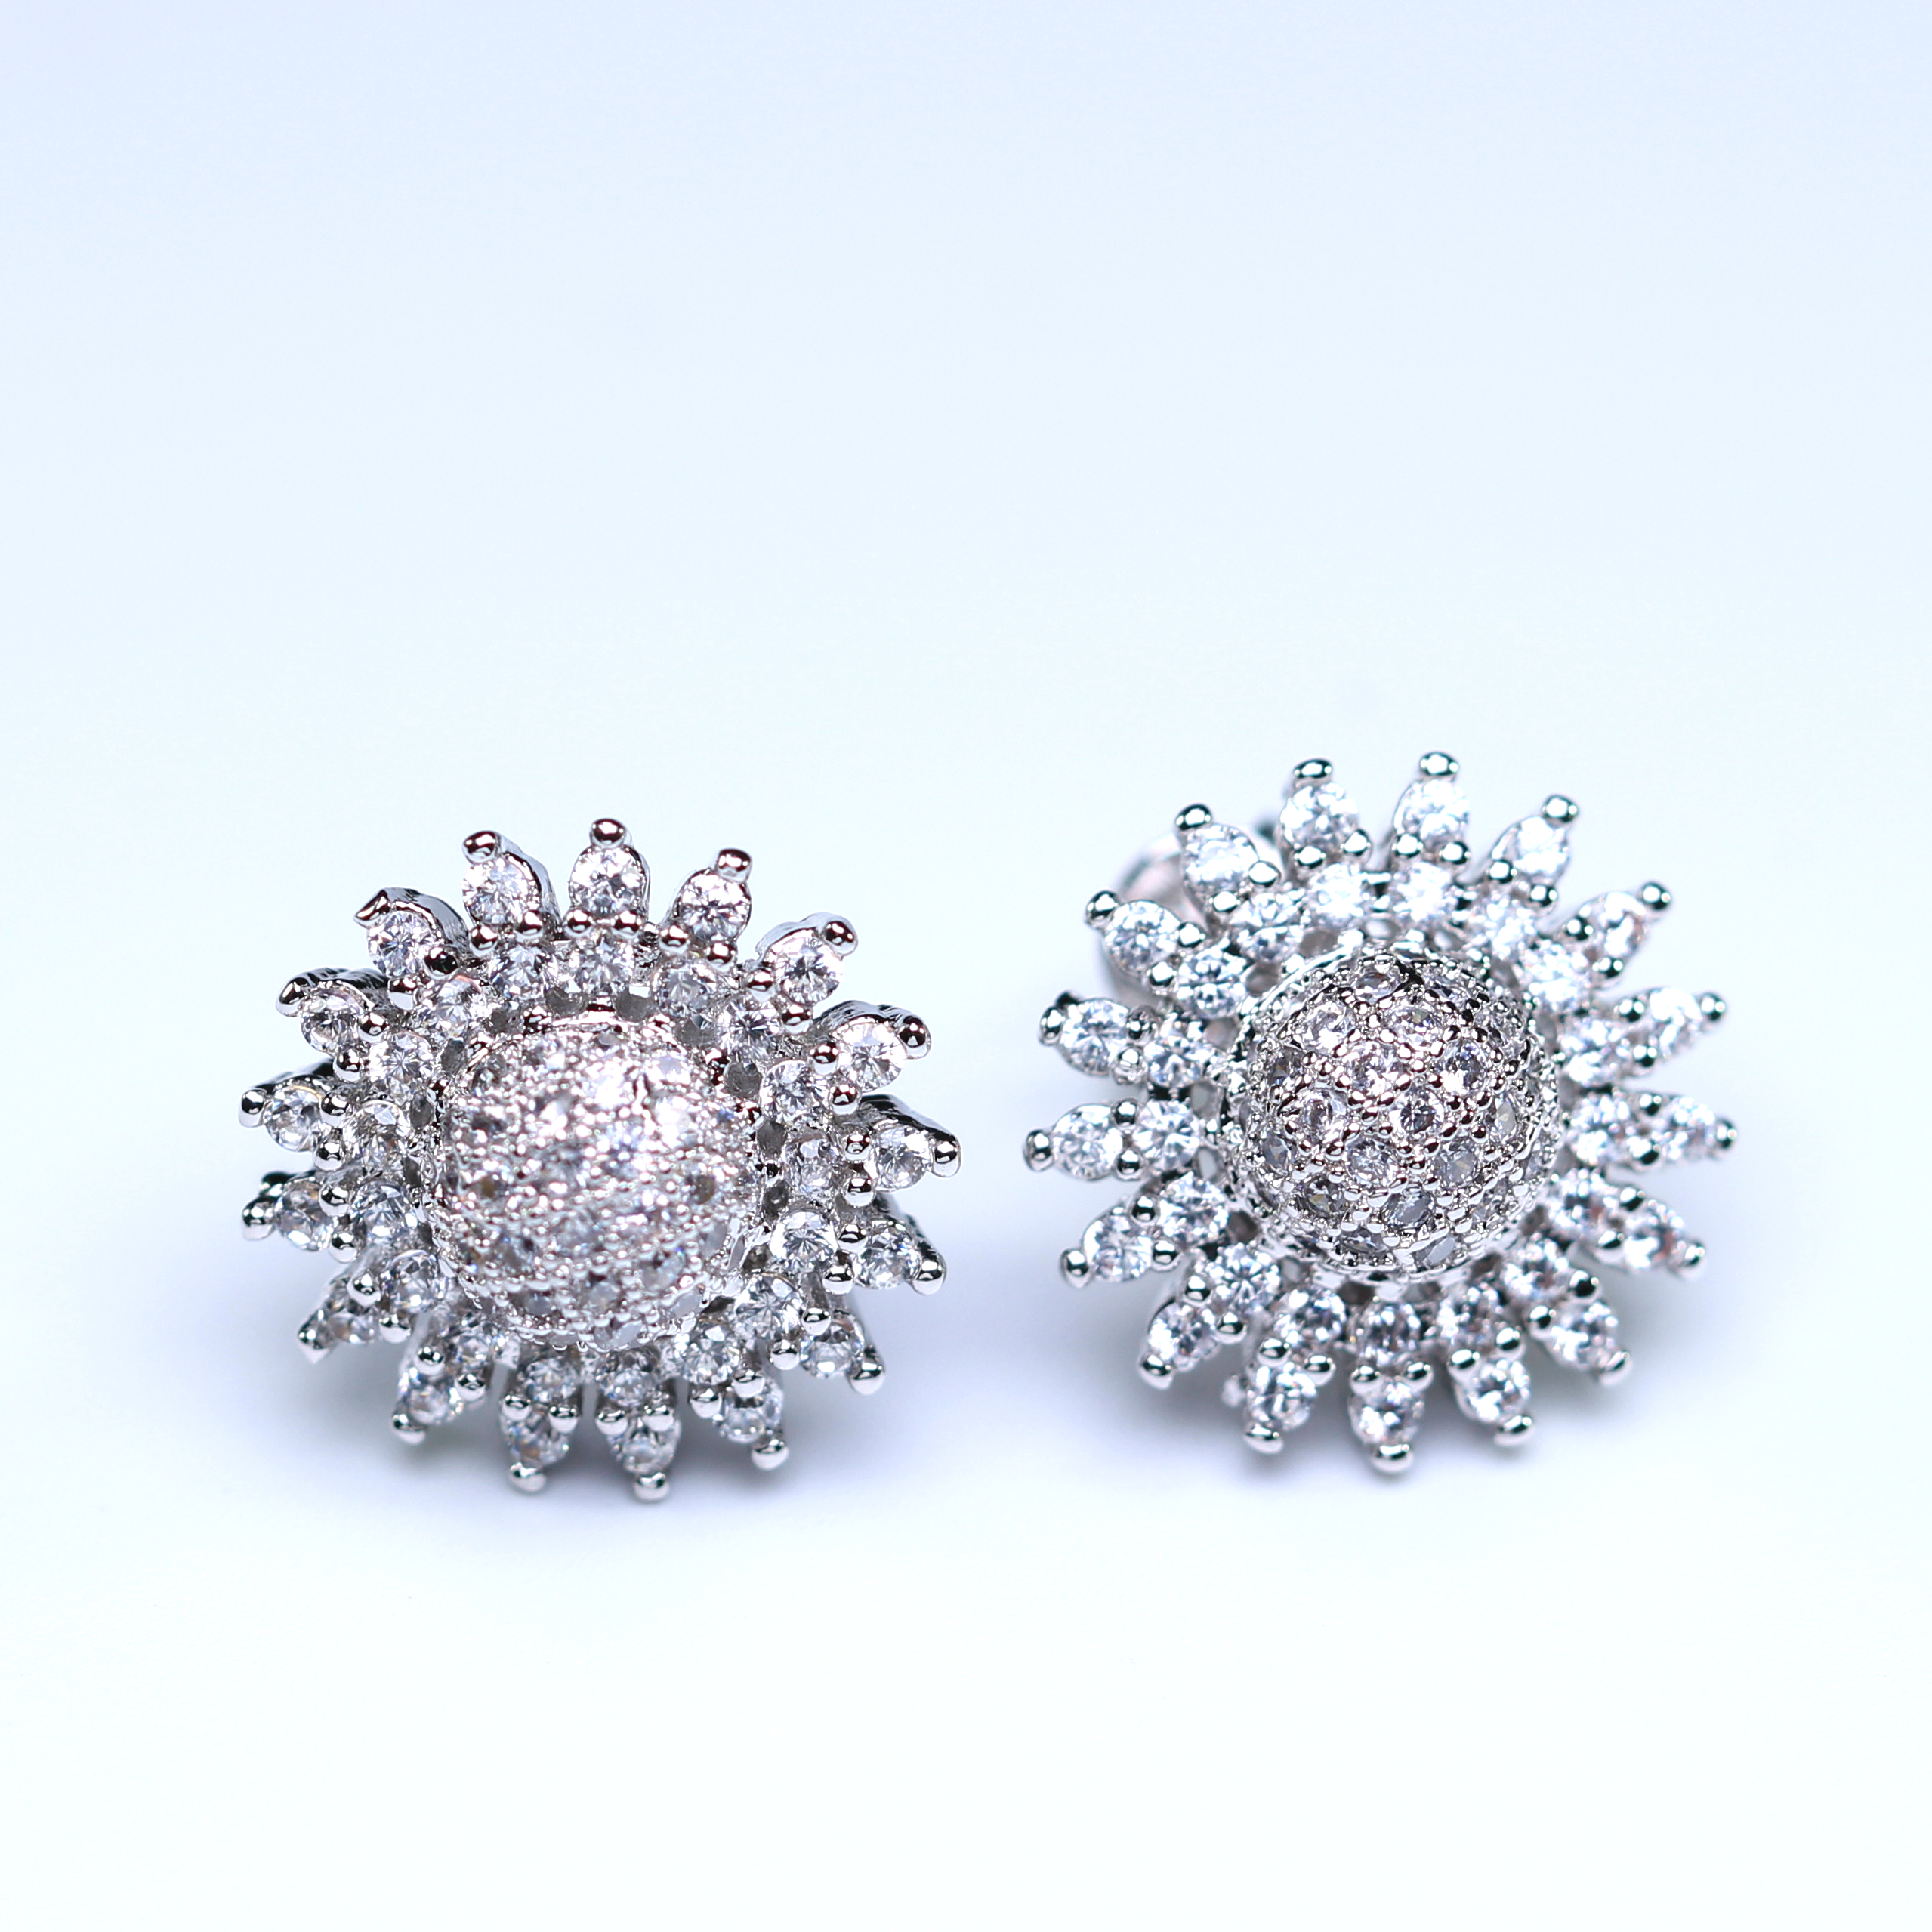 mj flower stud big product shopperboard coin earrings